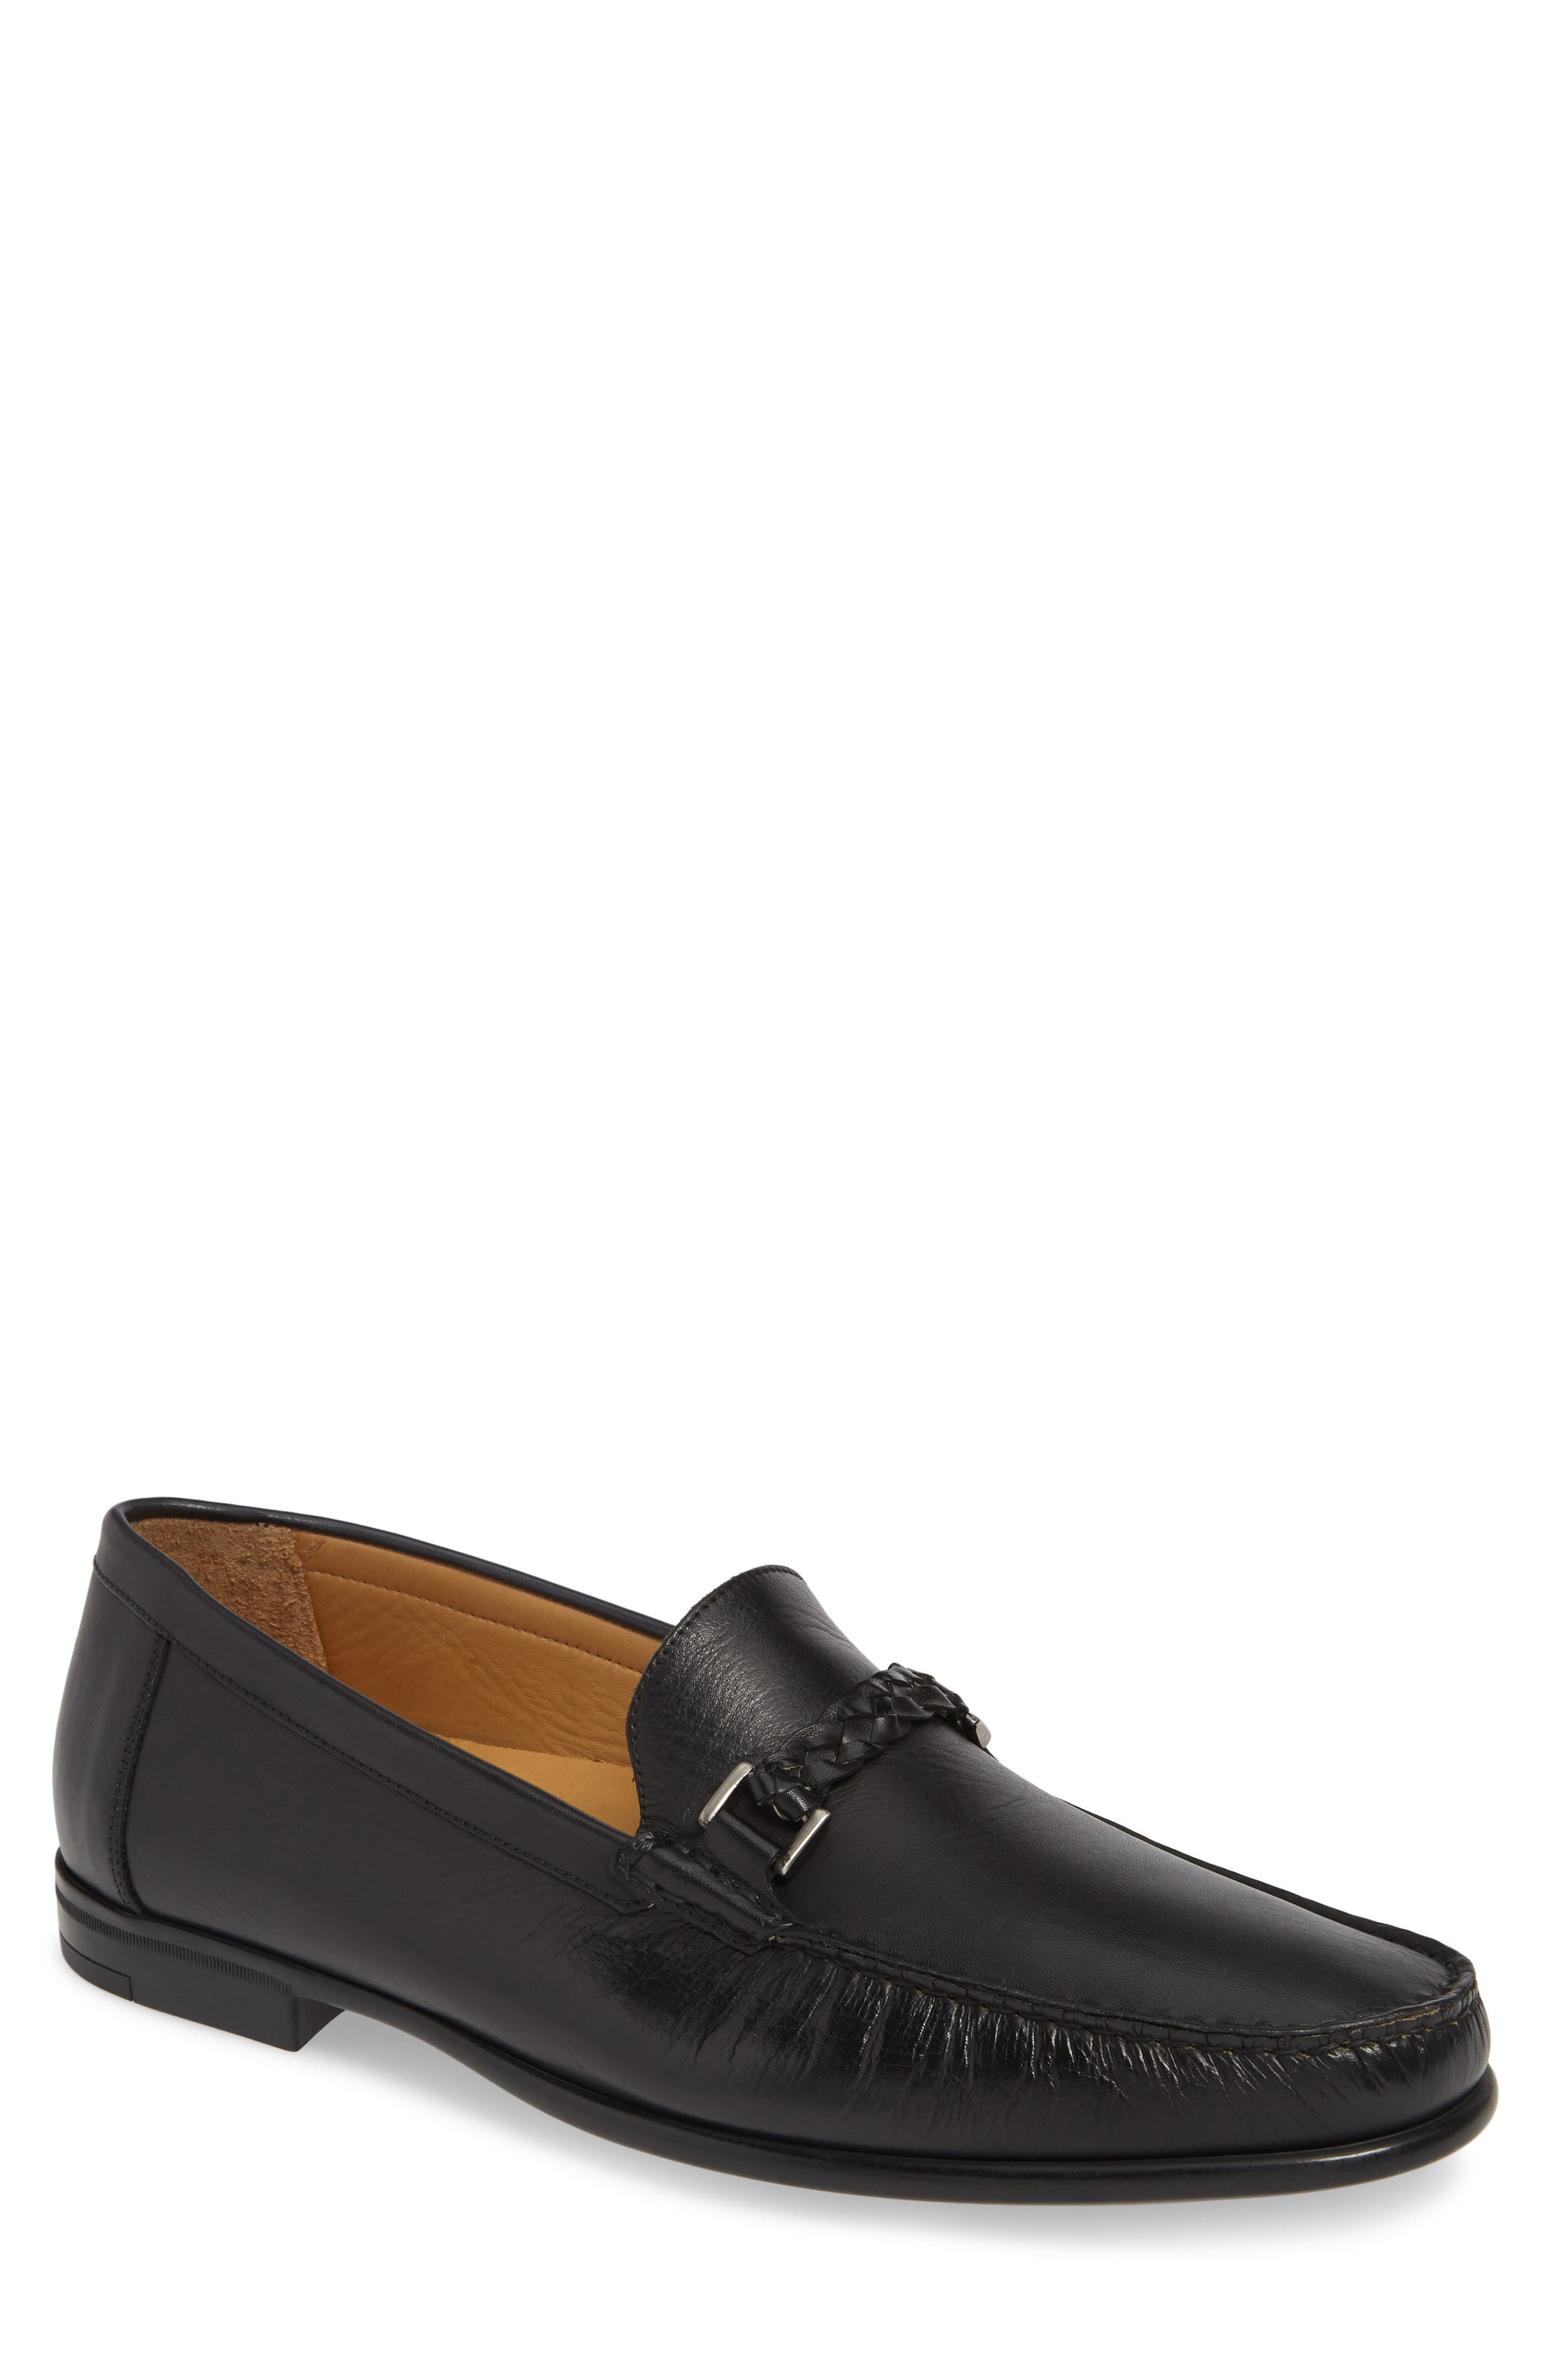 Mezlan Dorelli Bit Loafer- Black